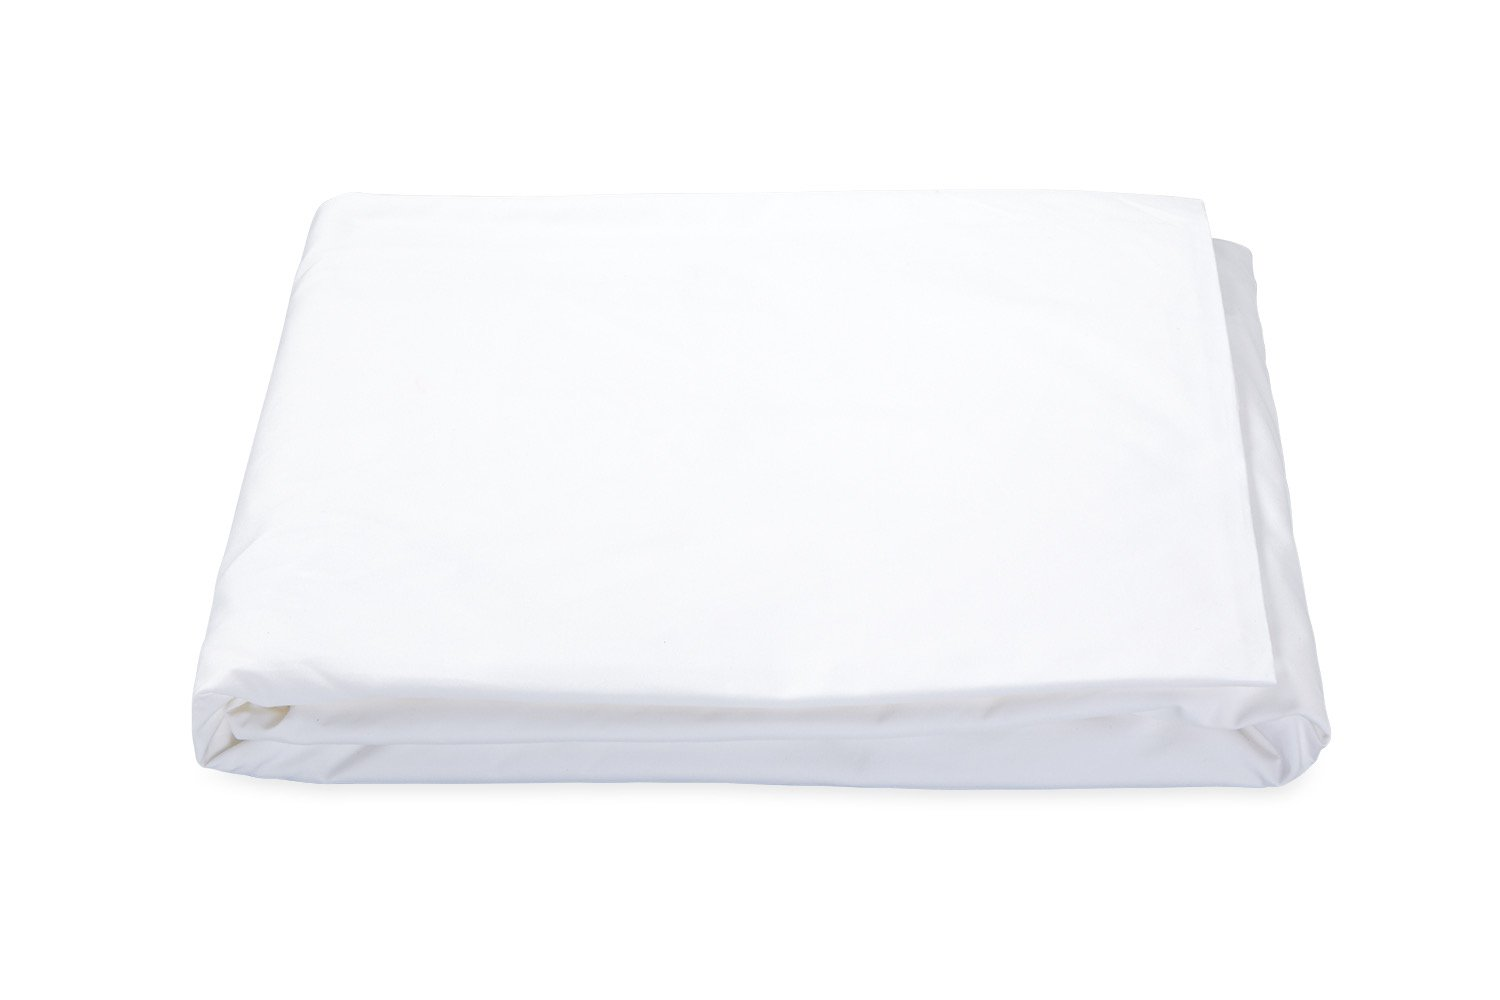 Ceylon White Fitted Sheet | Percale Bedding by Matouk